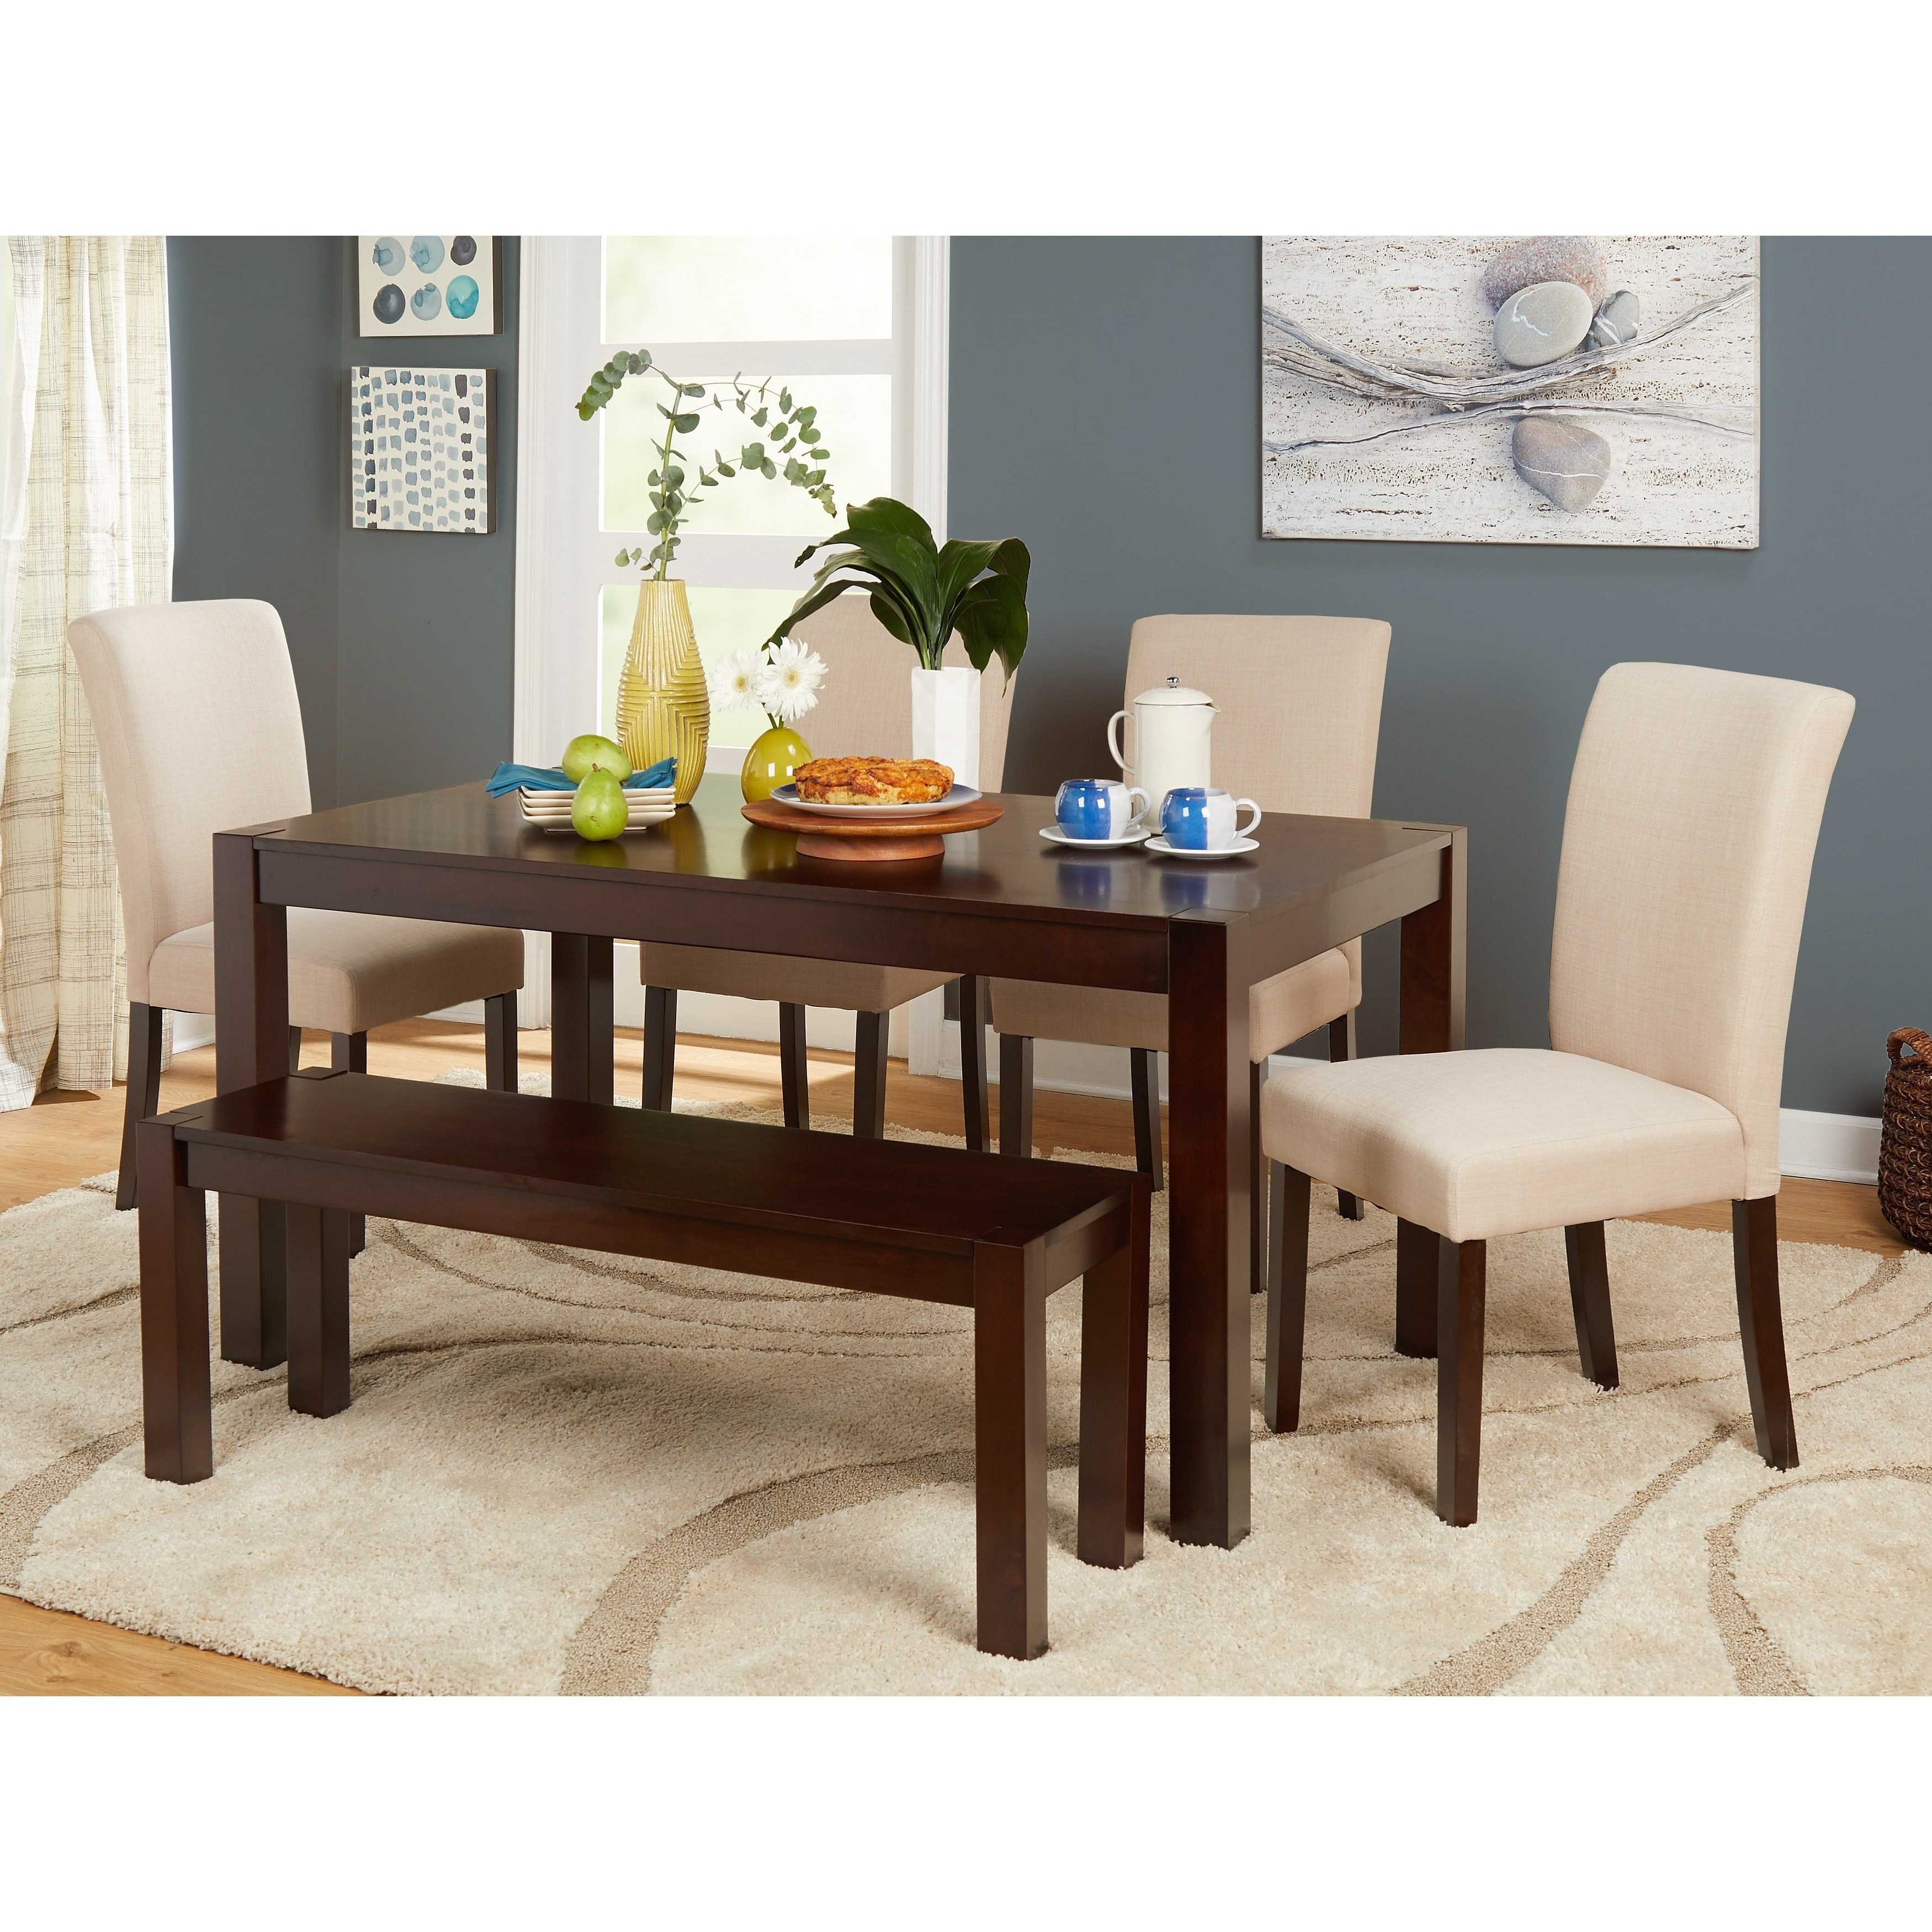 Conover 5 Piece Dining Sets Inside Well Known Shop Simple Living Axis 6 Piece Dining Set With Dining Bench – On (View 5 of 25)